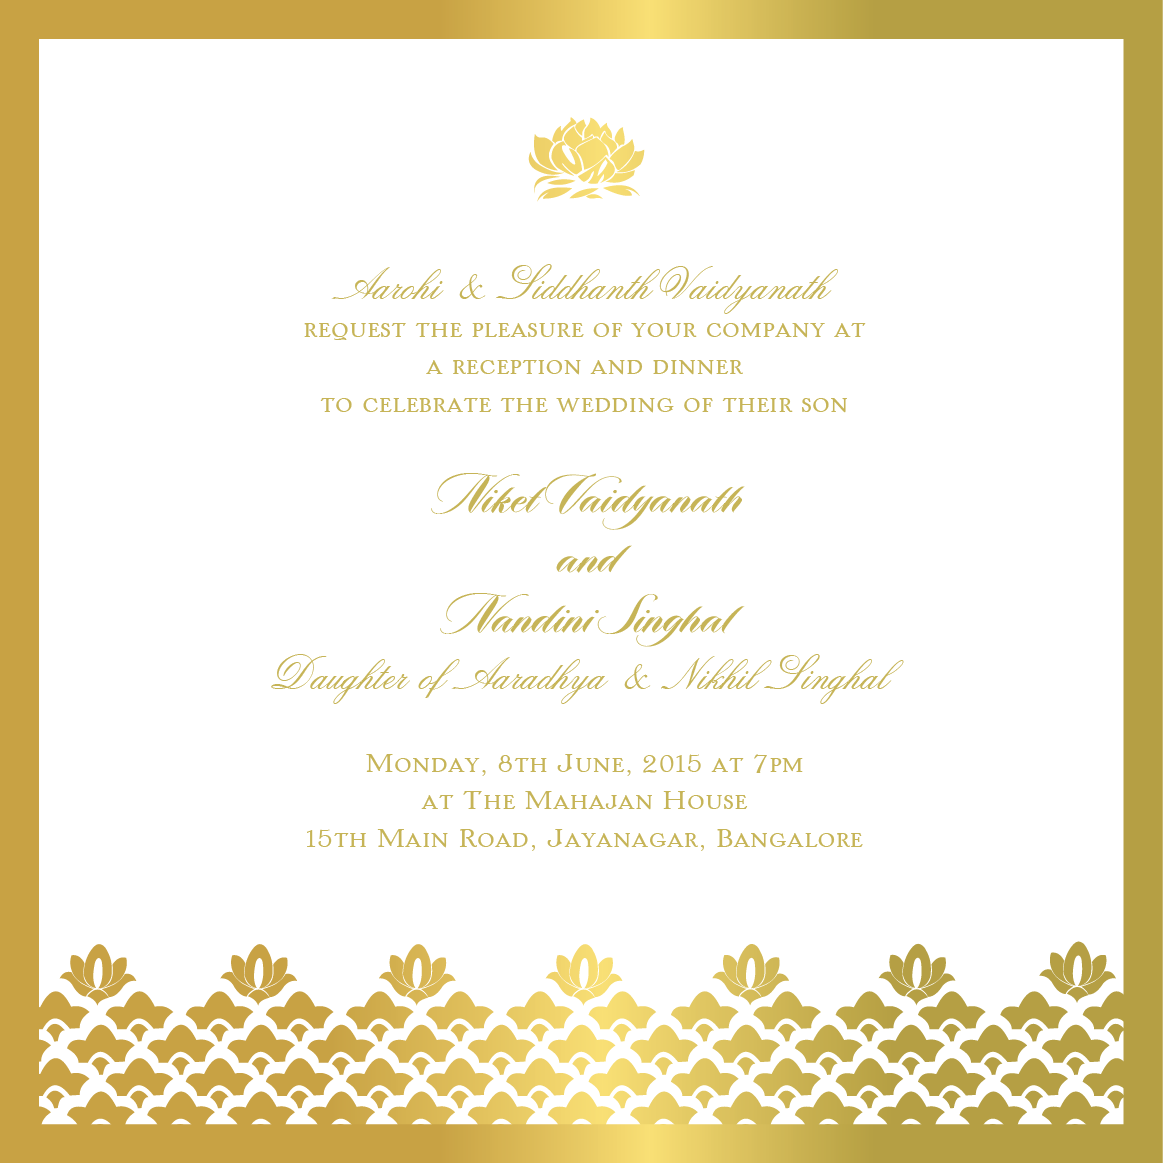 Elegant Gold Border And Motifs On Indian Reception Invitation Cards